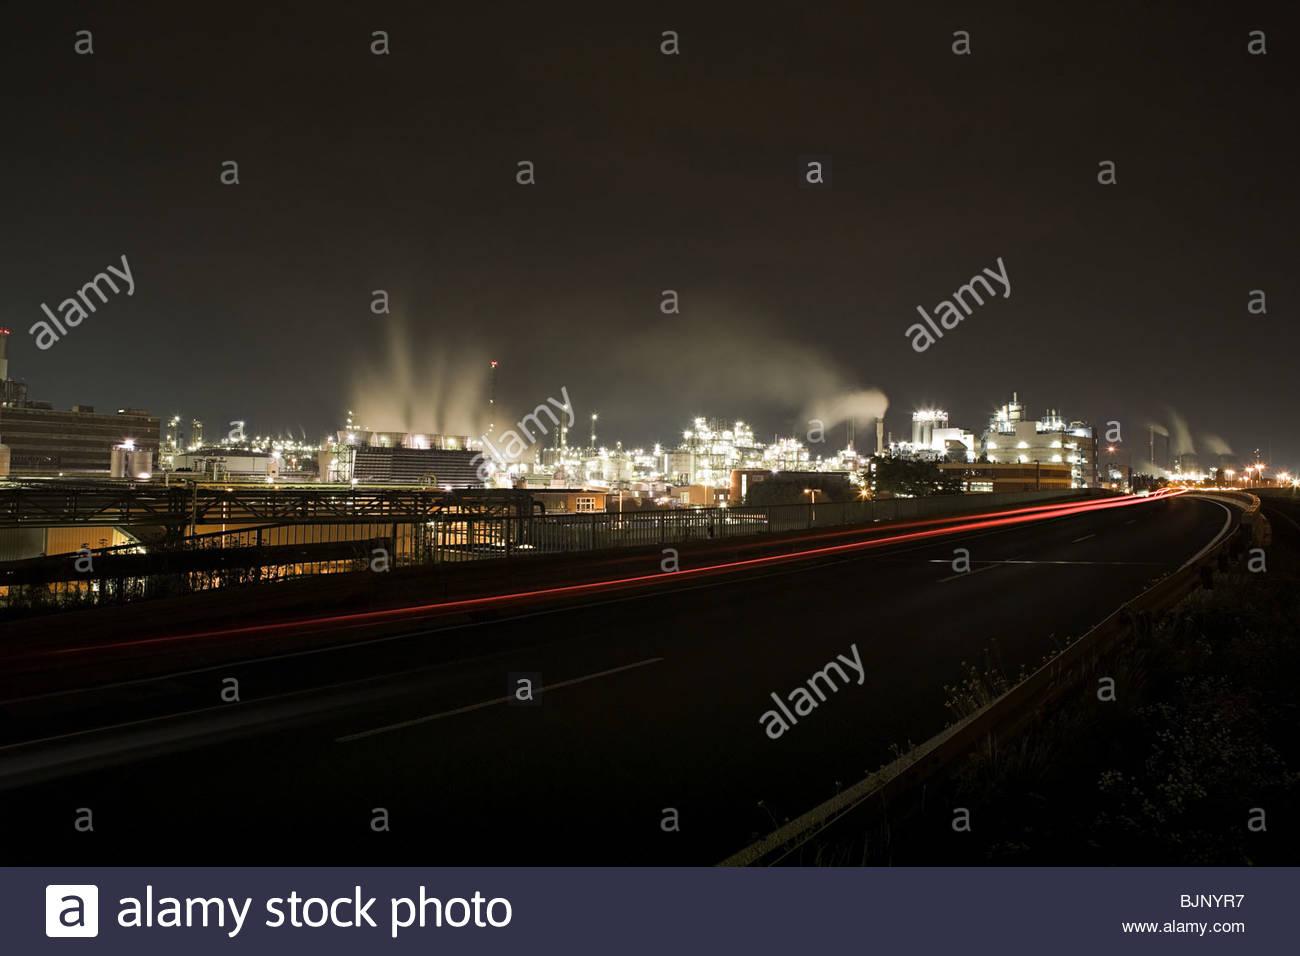 Chemical plant at night - Stock Image